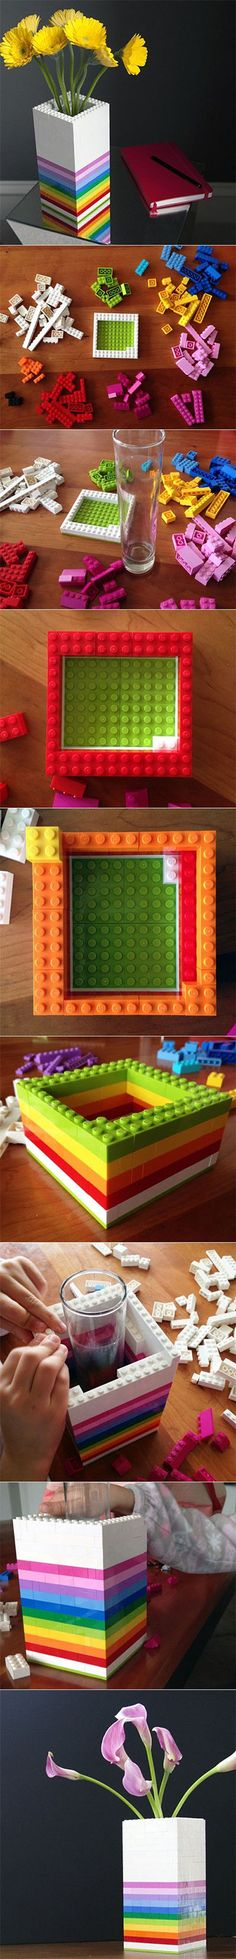 DIY Lego Vase | DIY & Crafts Tutorials